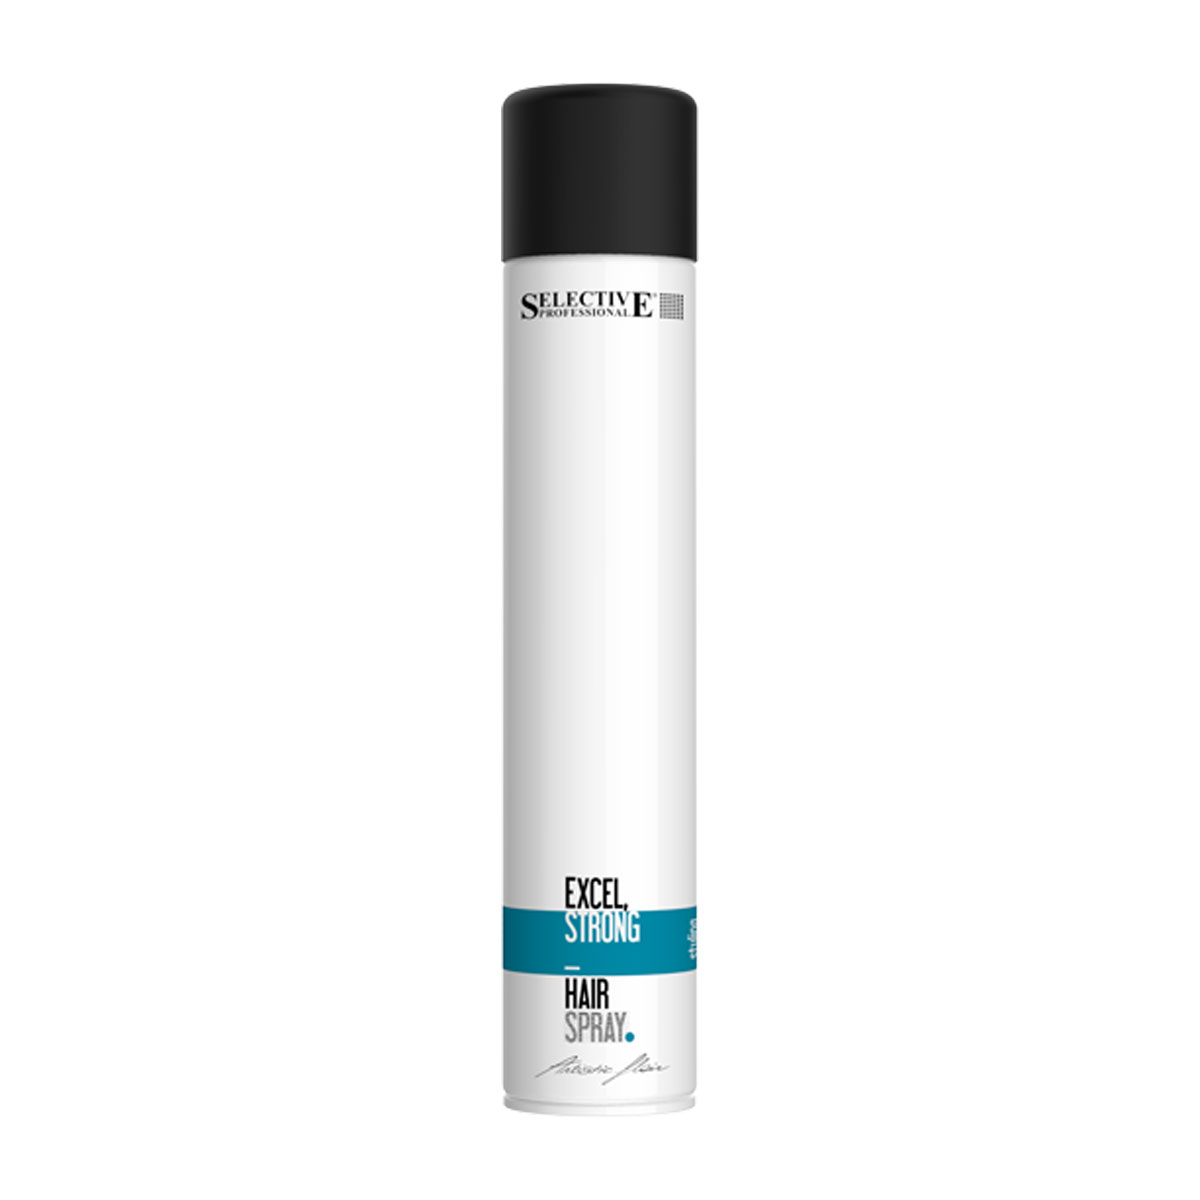 SEL LAK EXTRA STRONG 500ML